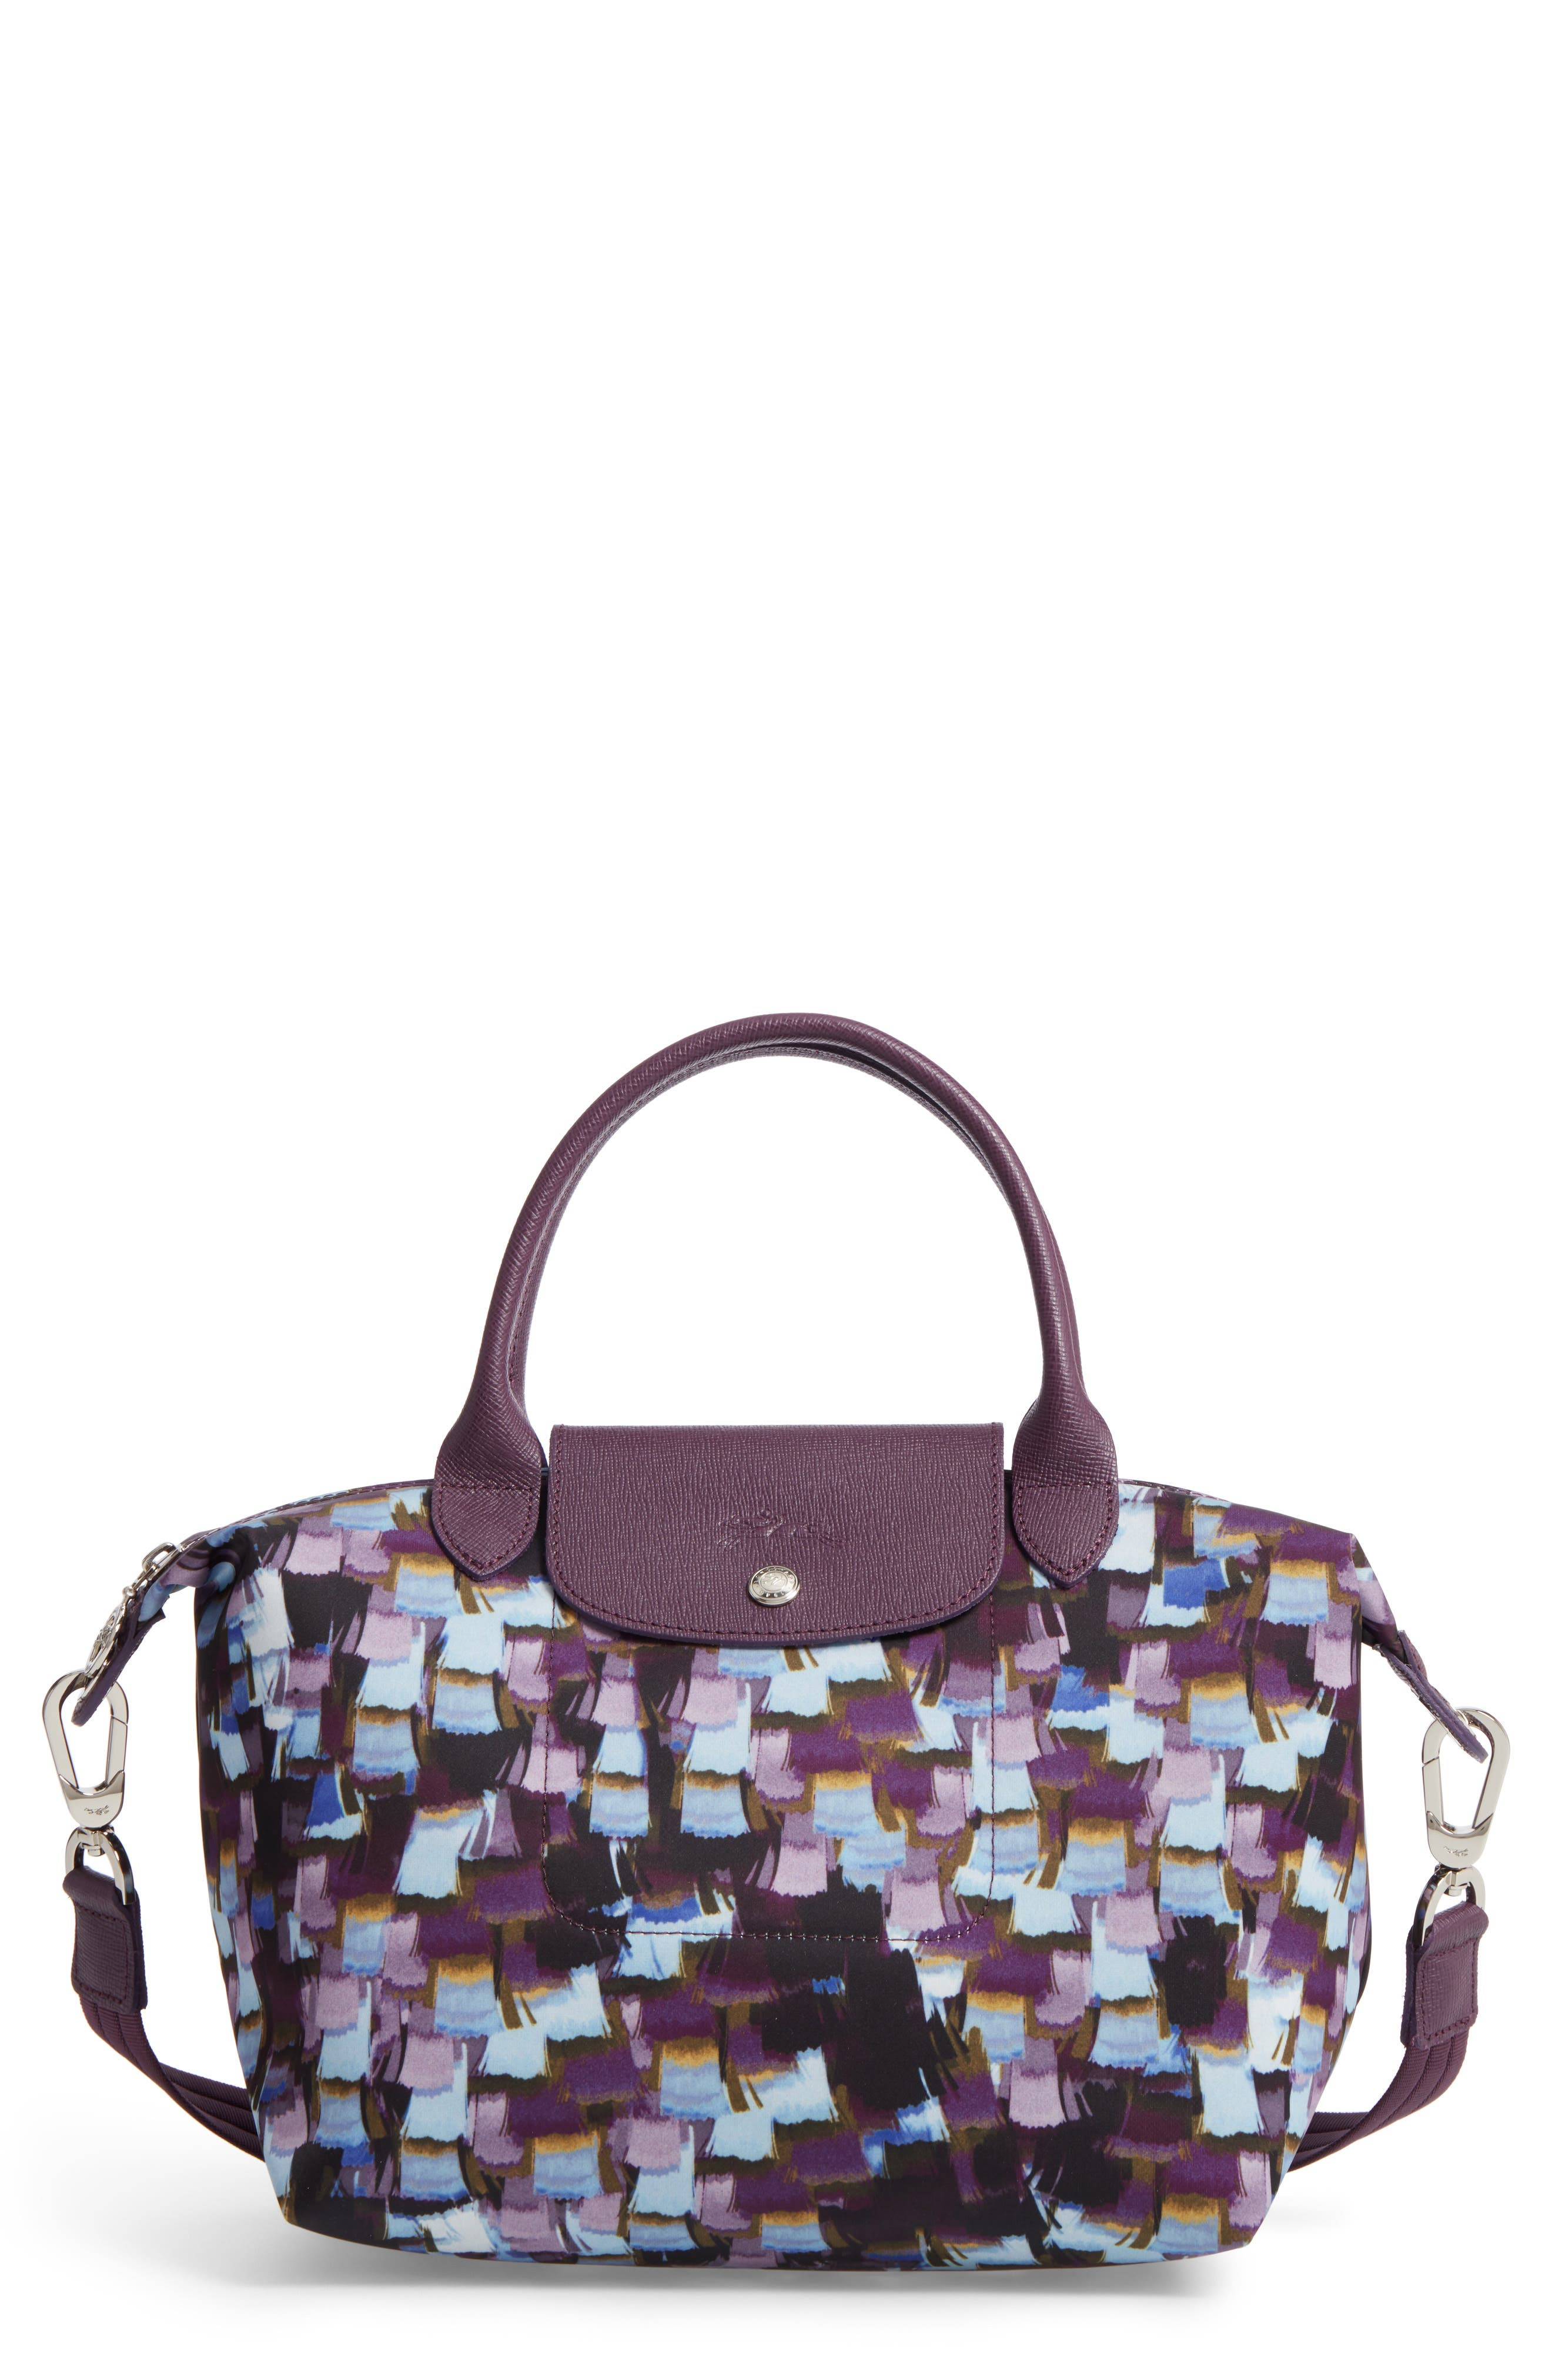 Longchamp Le Pliage Neo - Vibrations Nylon Tote